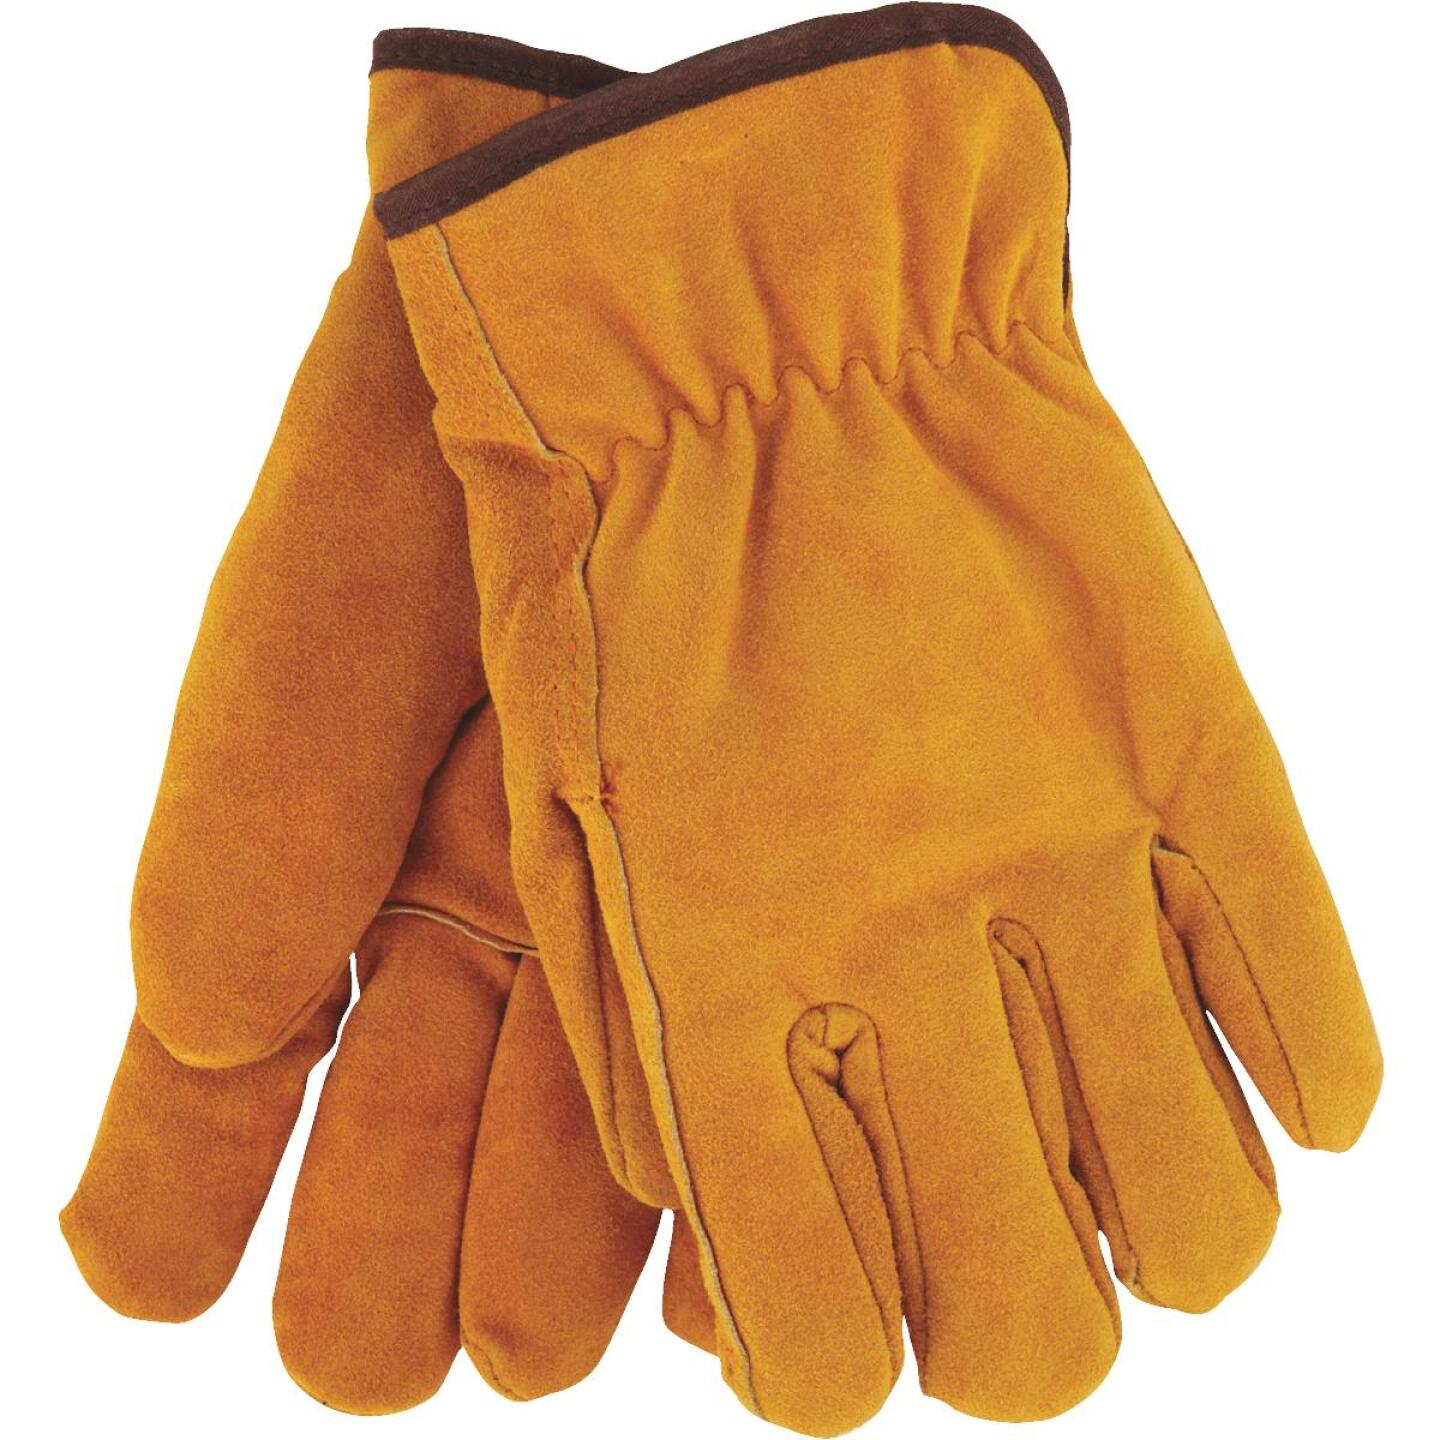 Do it Men's Large Lined Leather Winter Work Glove Image 1